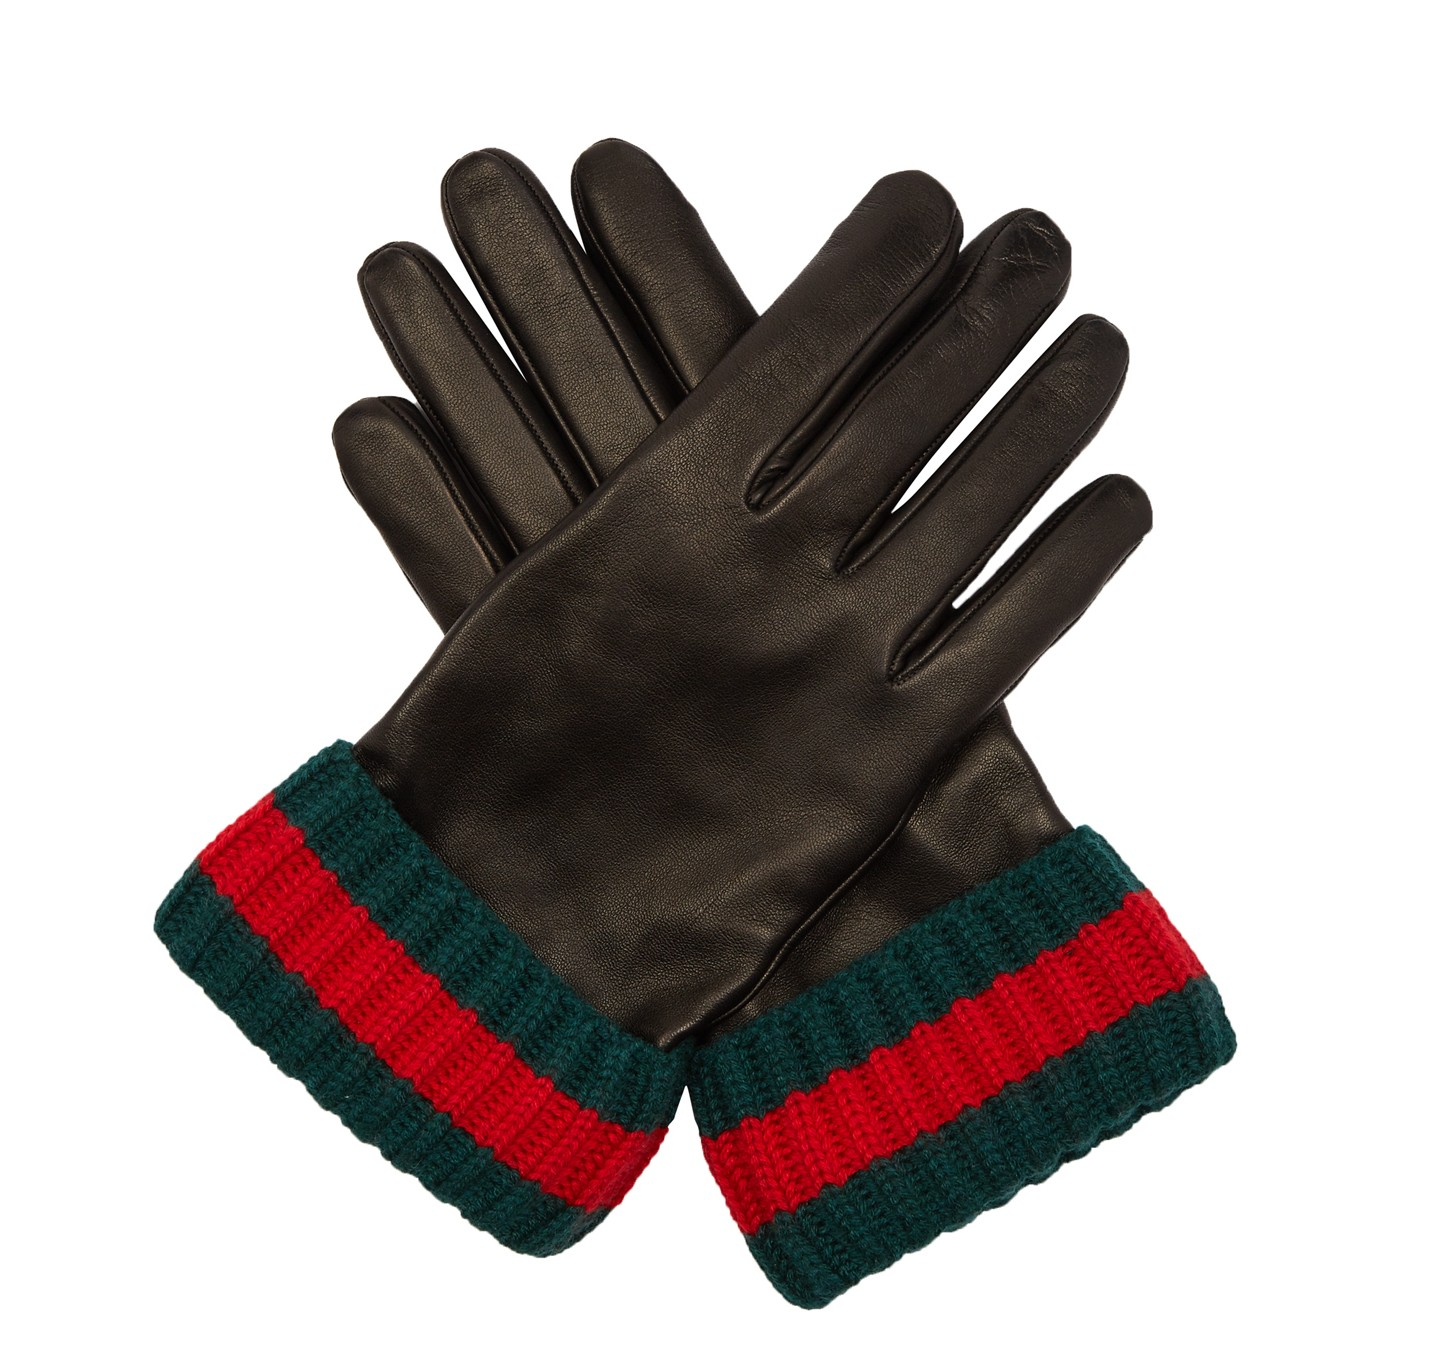 201701_must see_longing_menz_popularity_glove_brand_057